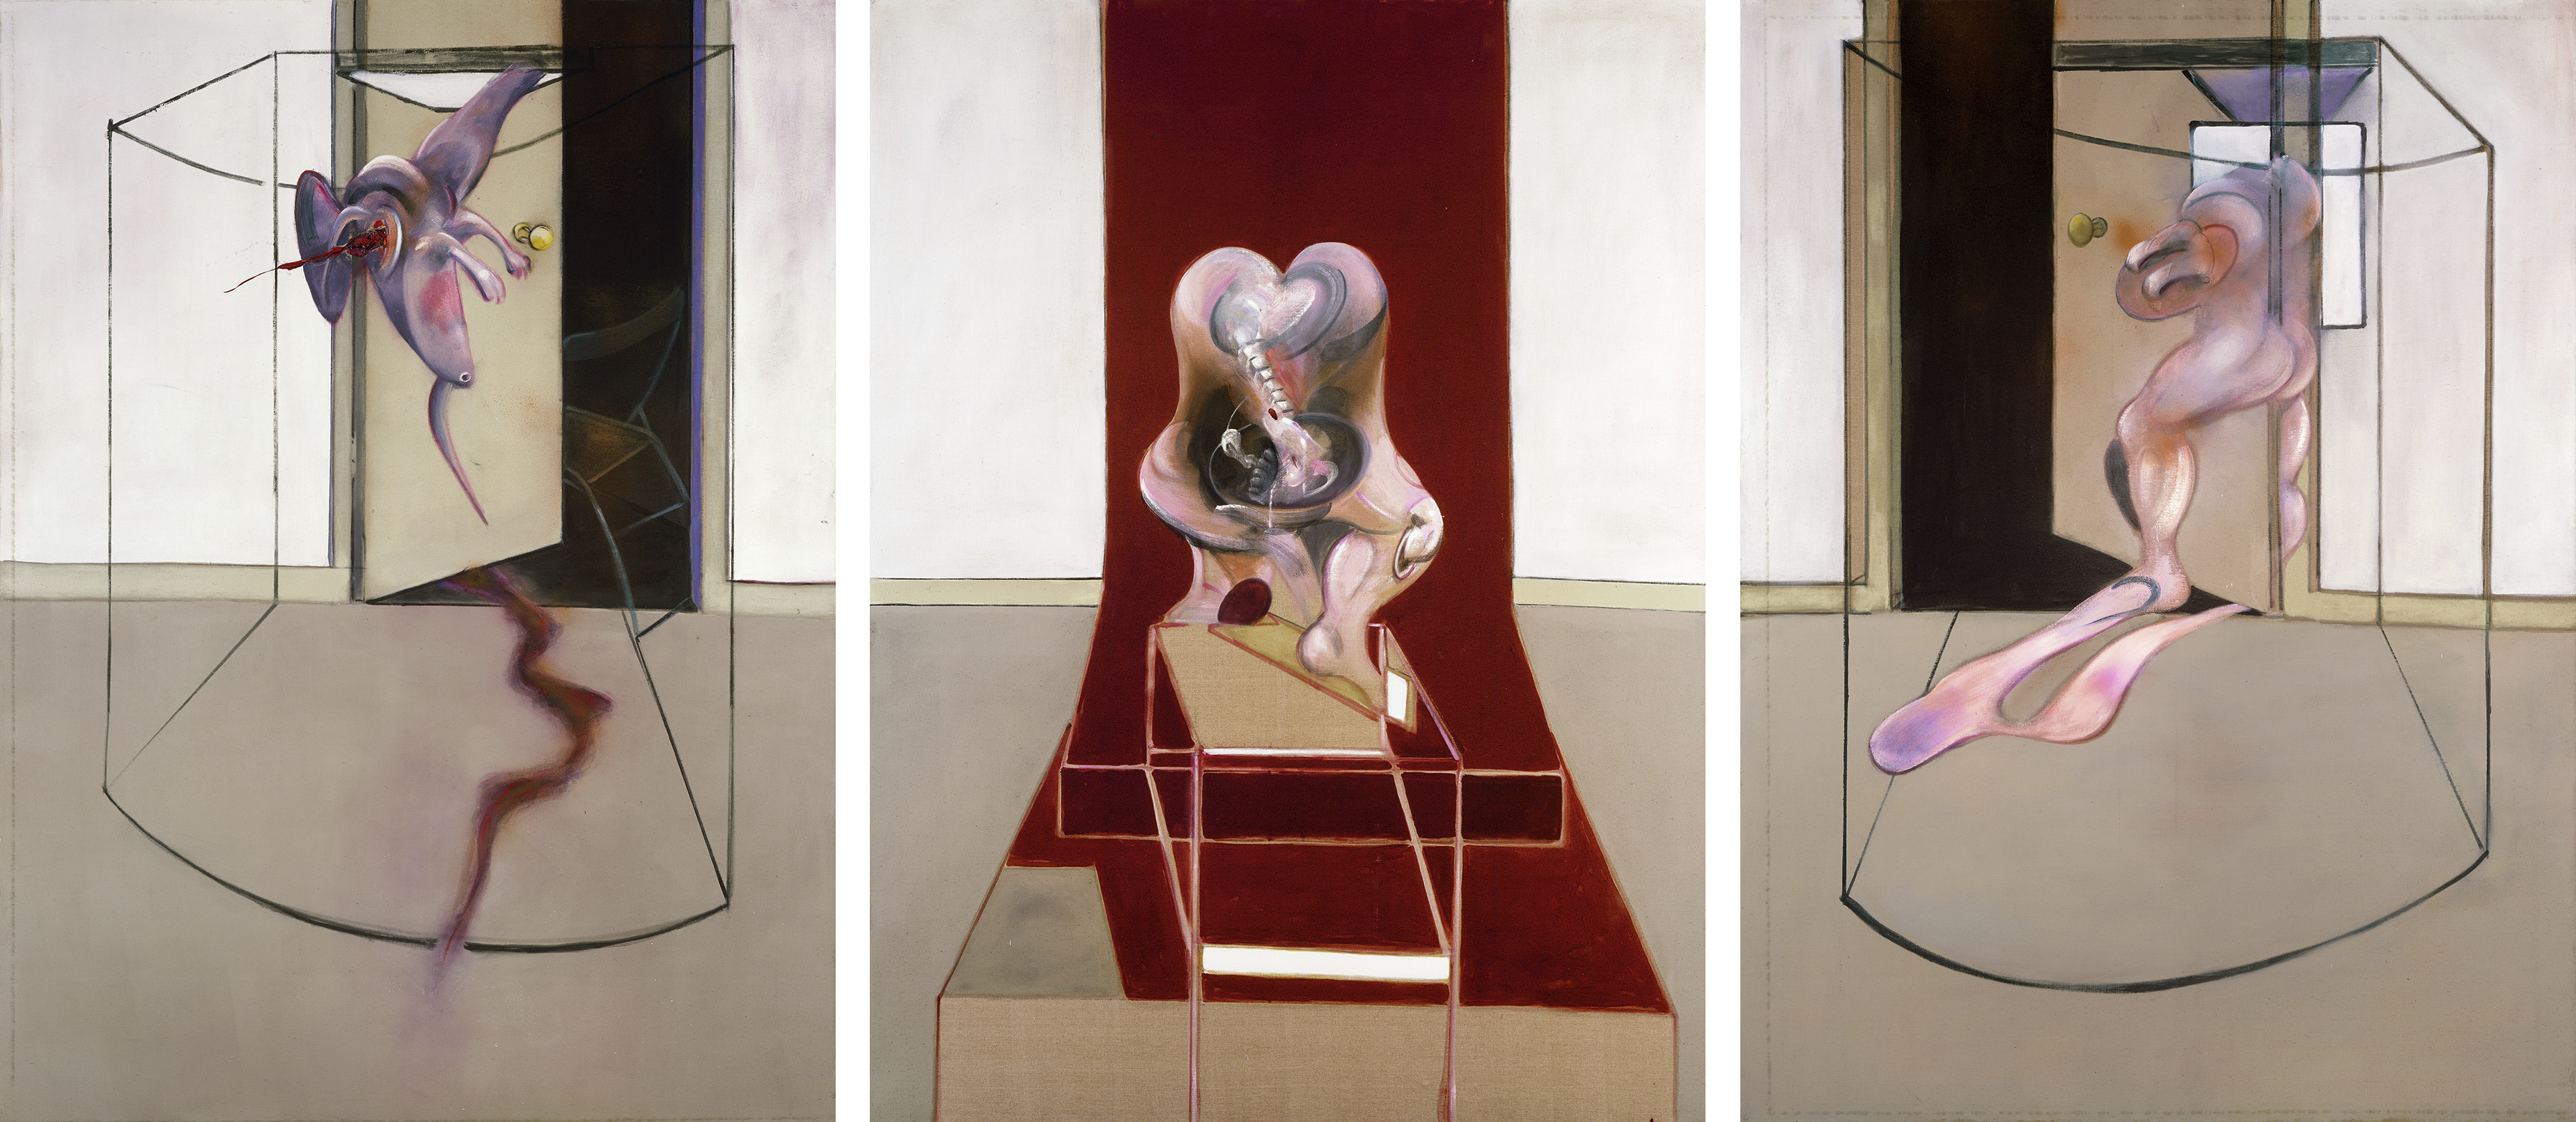 Francis Bacon, Triptych, Inspired by the Oresteia of Aeschylus, 1981. Oil on canvas. CR number 81-03. © The Estate of Francis Bacon / DACS London 2020.  All rights reserved.